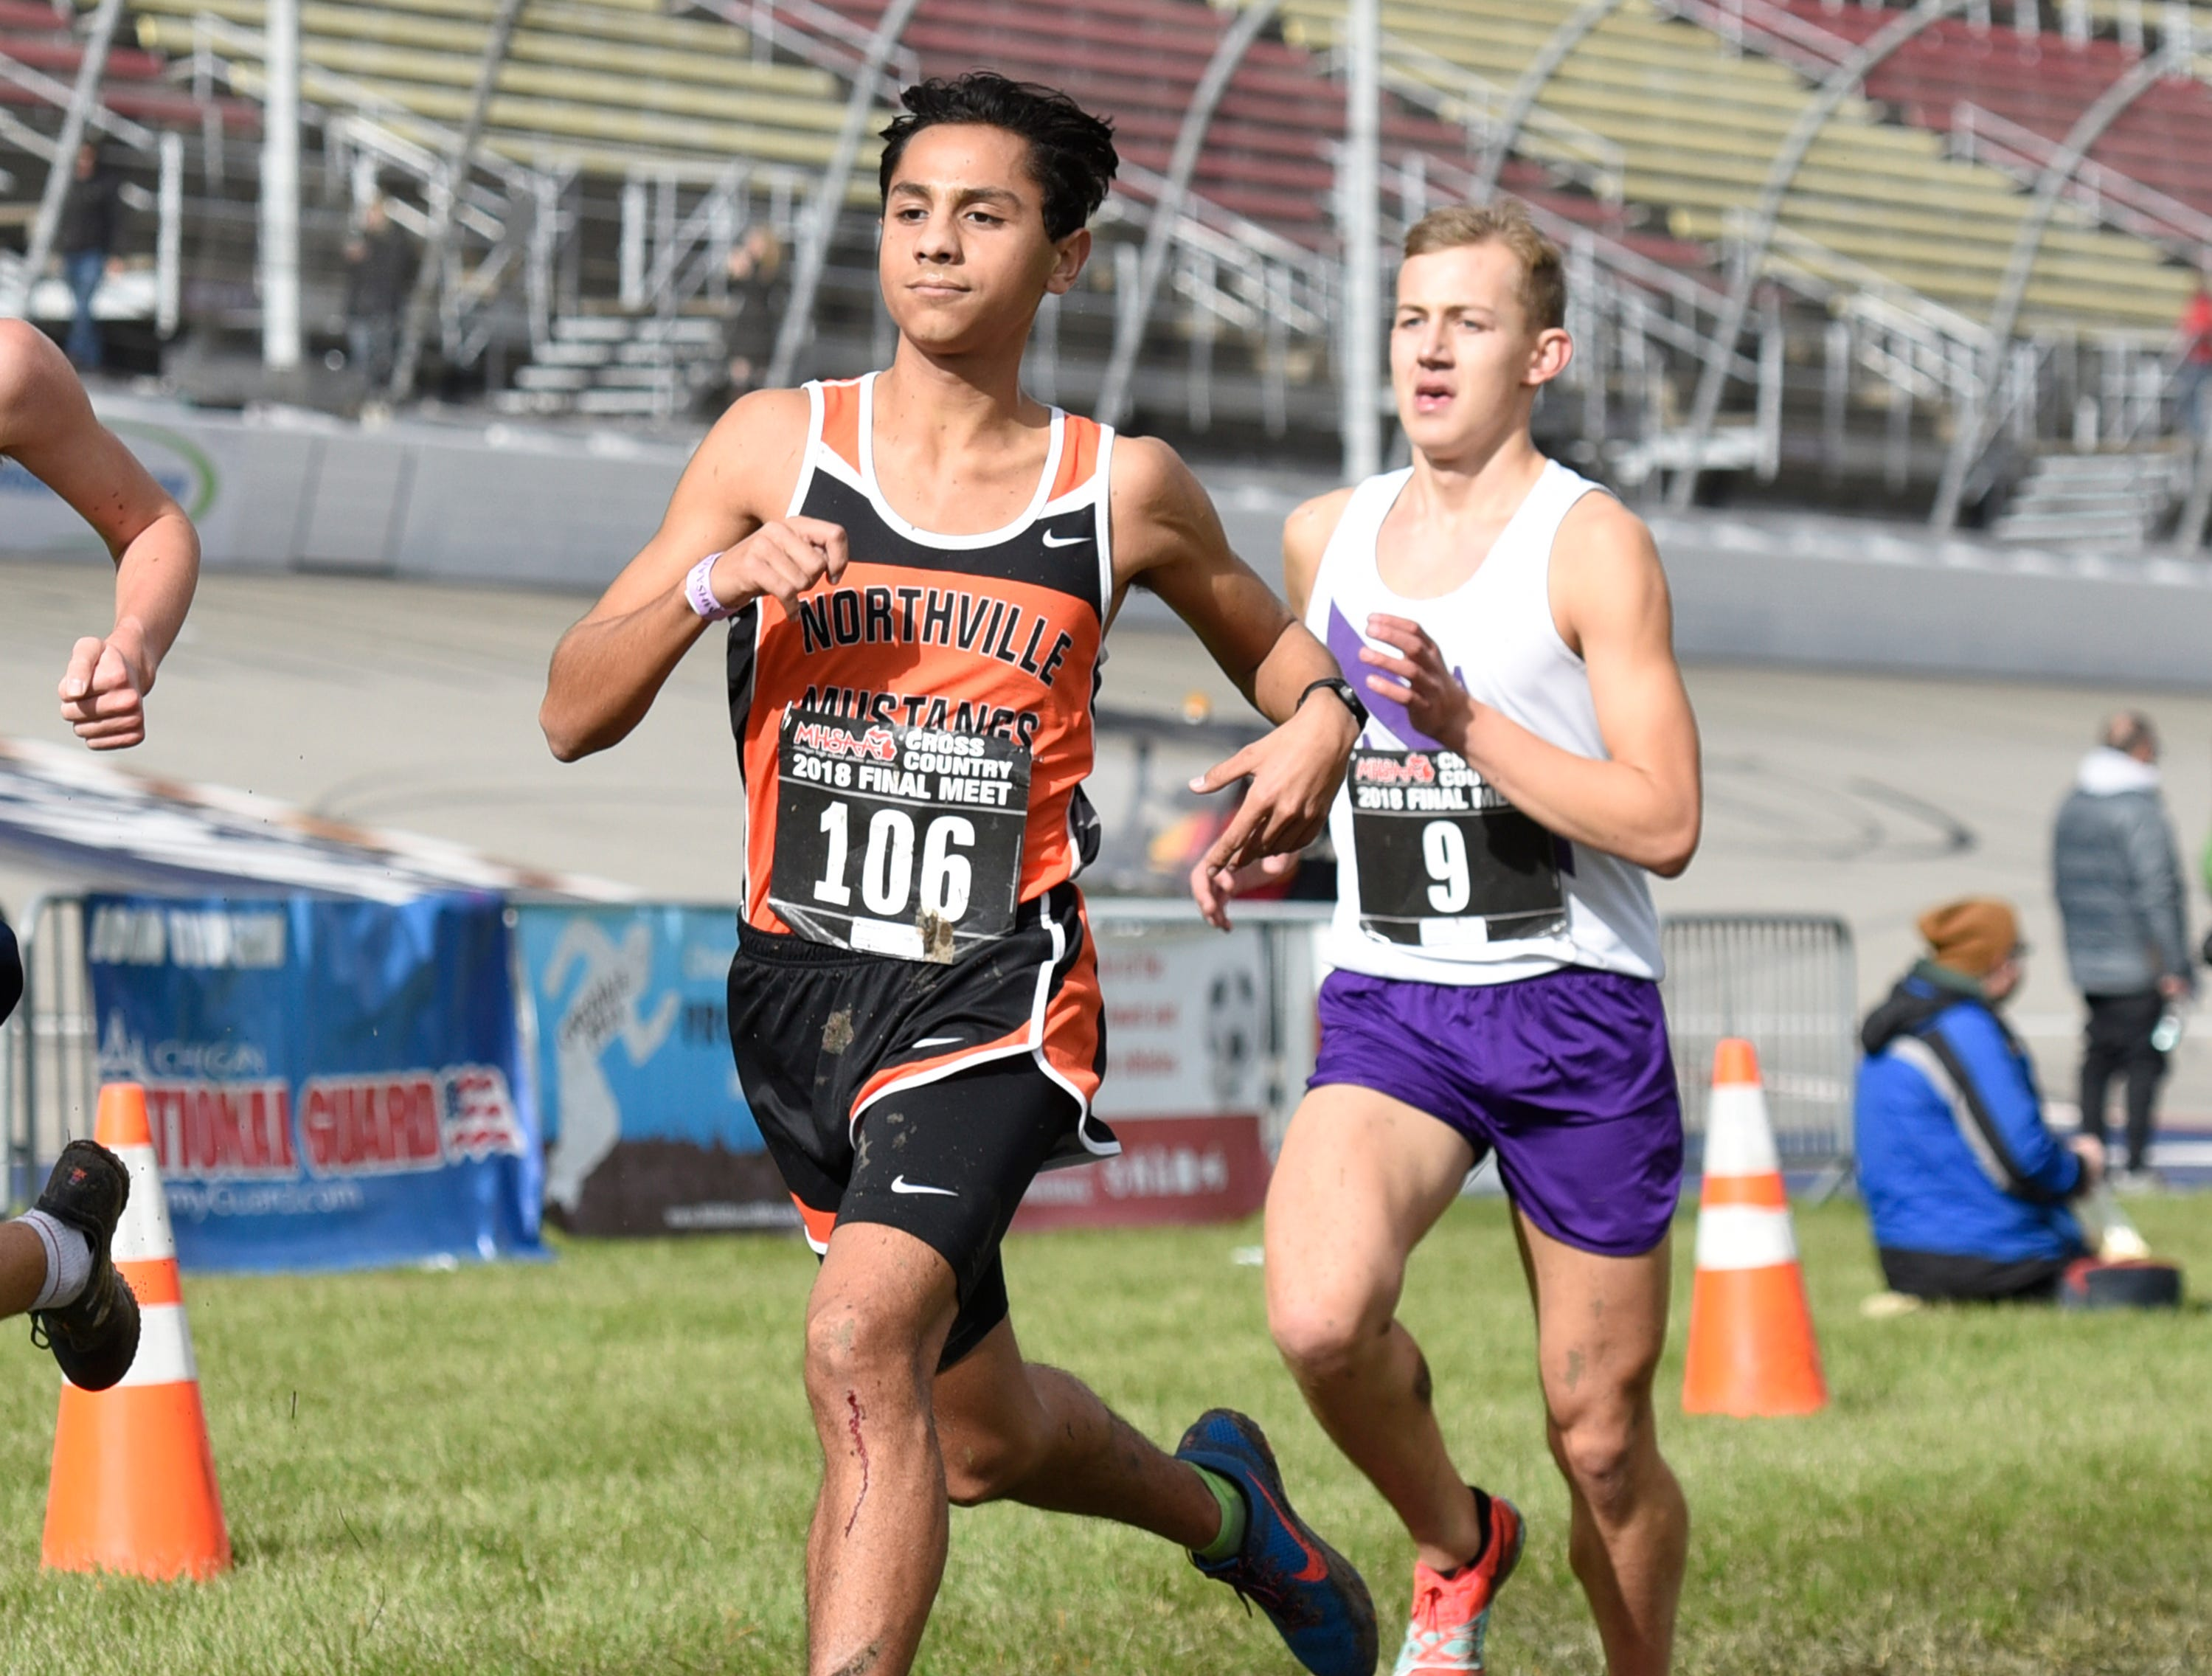 Northville's Ben Steinig during the Division 1 2018 cross country finals at Michigan International Speedway.